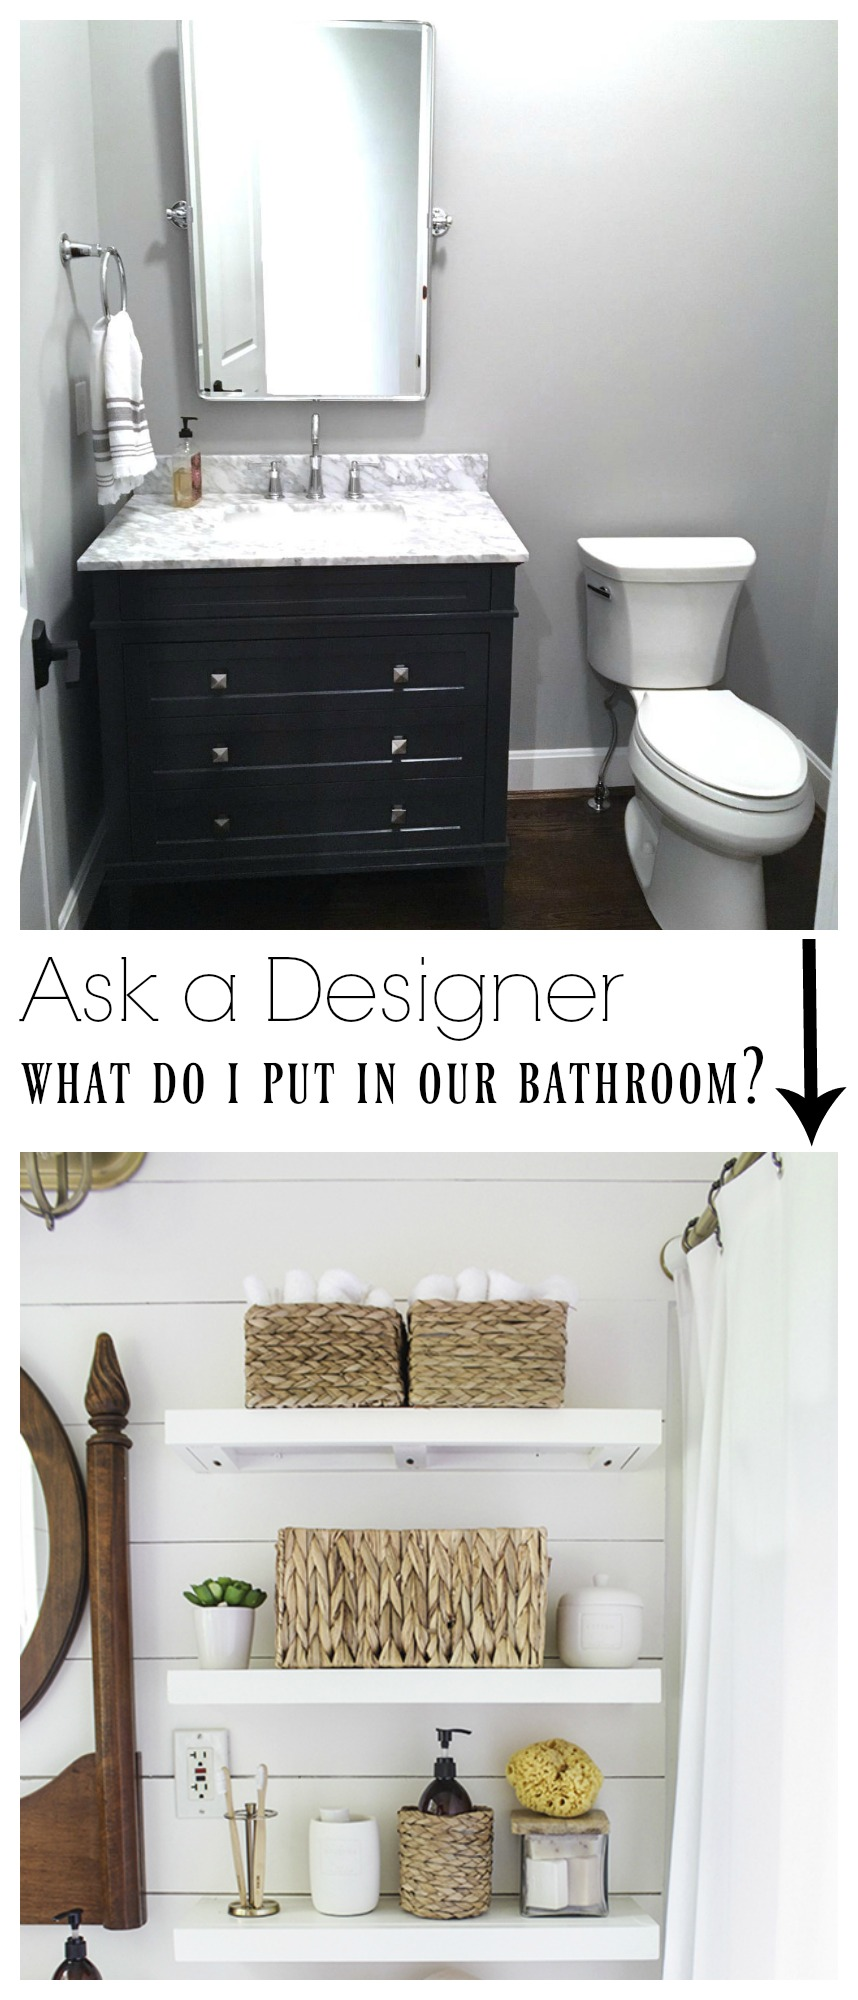 Ask a Designer- What do I put above our Bathroom toliet?